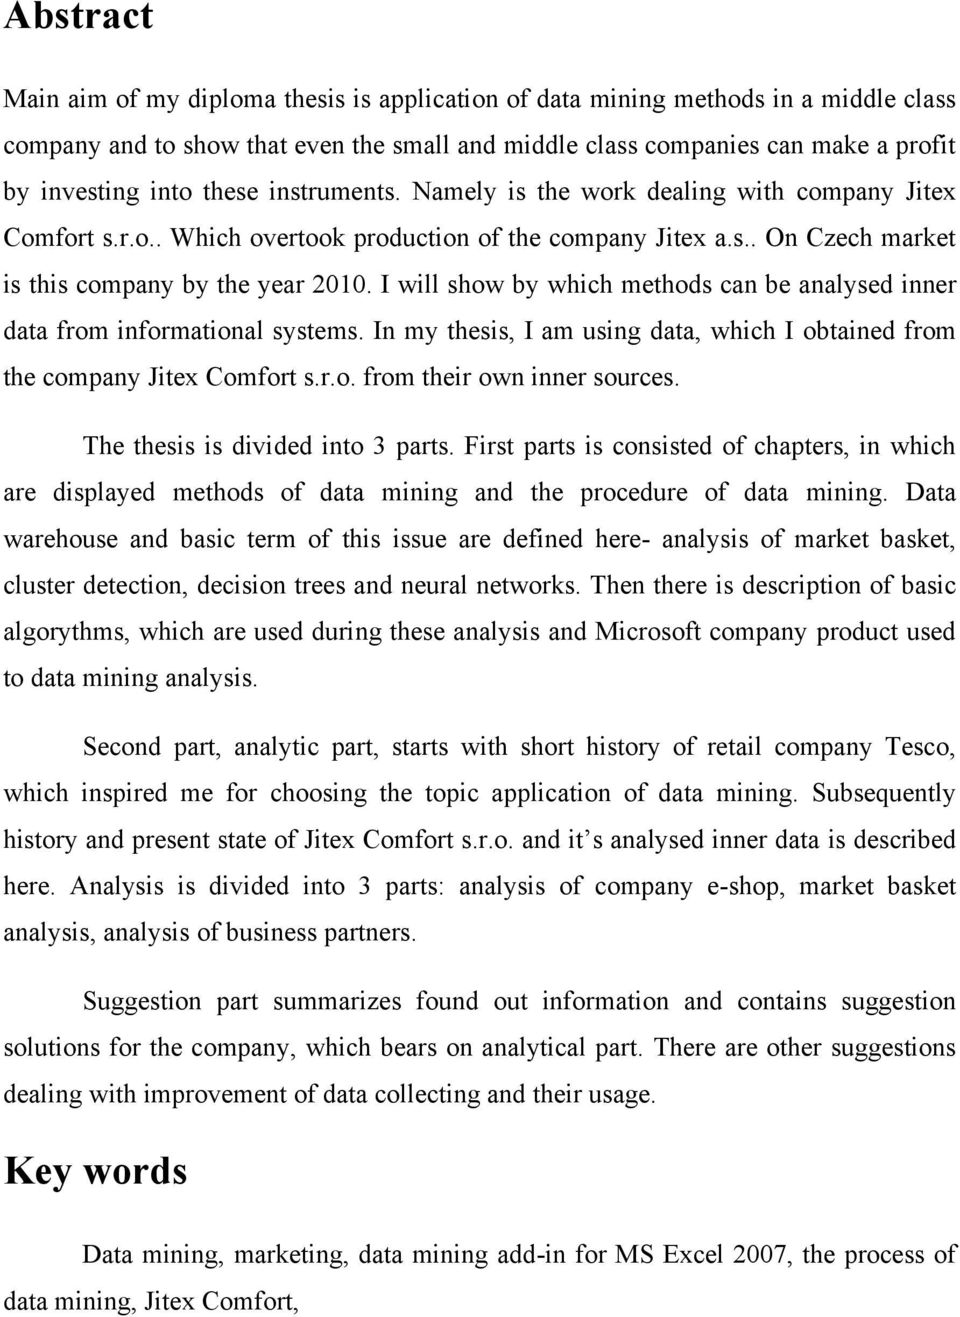 I will show by which methods can be analysed inner data from informational systems. In my thesis, I am using data, which I obtained from the company Jitex Comfort s.r.o. from their own inner sources.